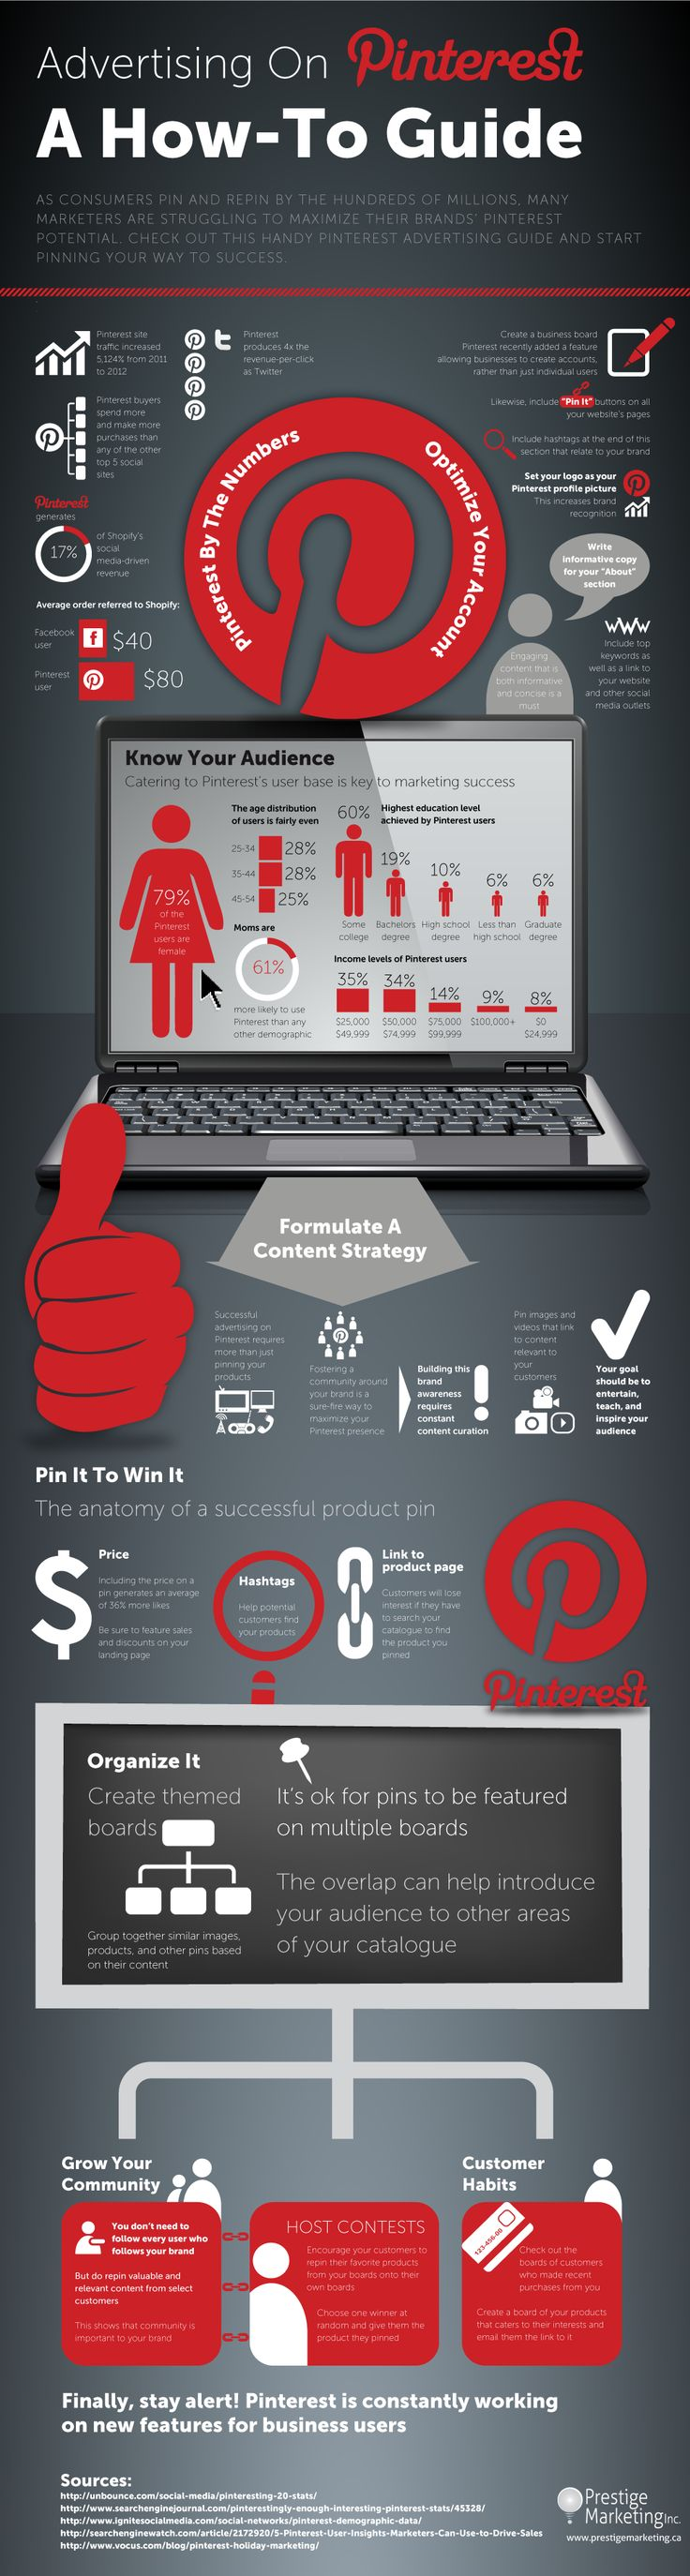 How to Advertise On Pinterest. #infographic